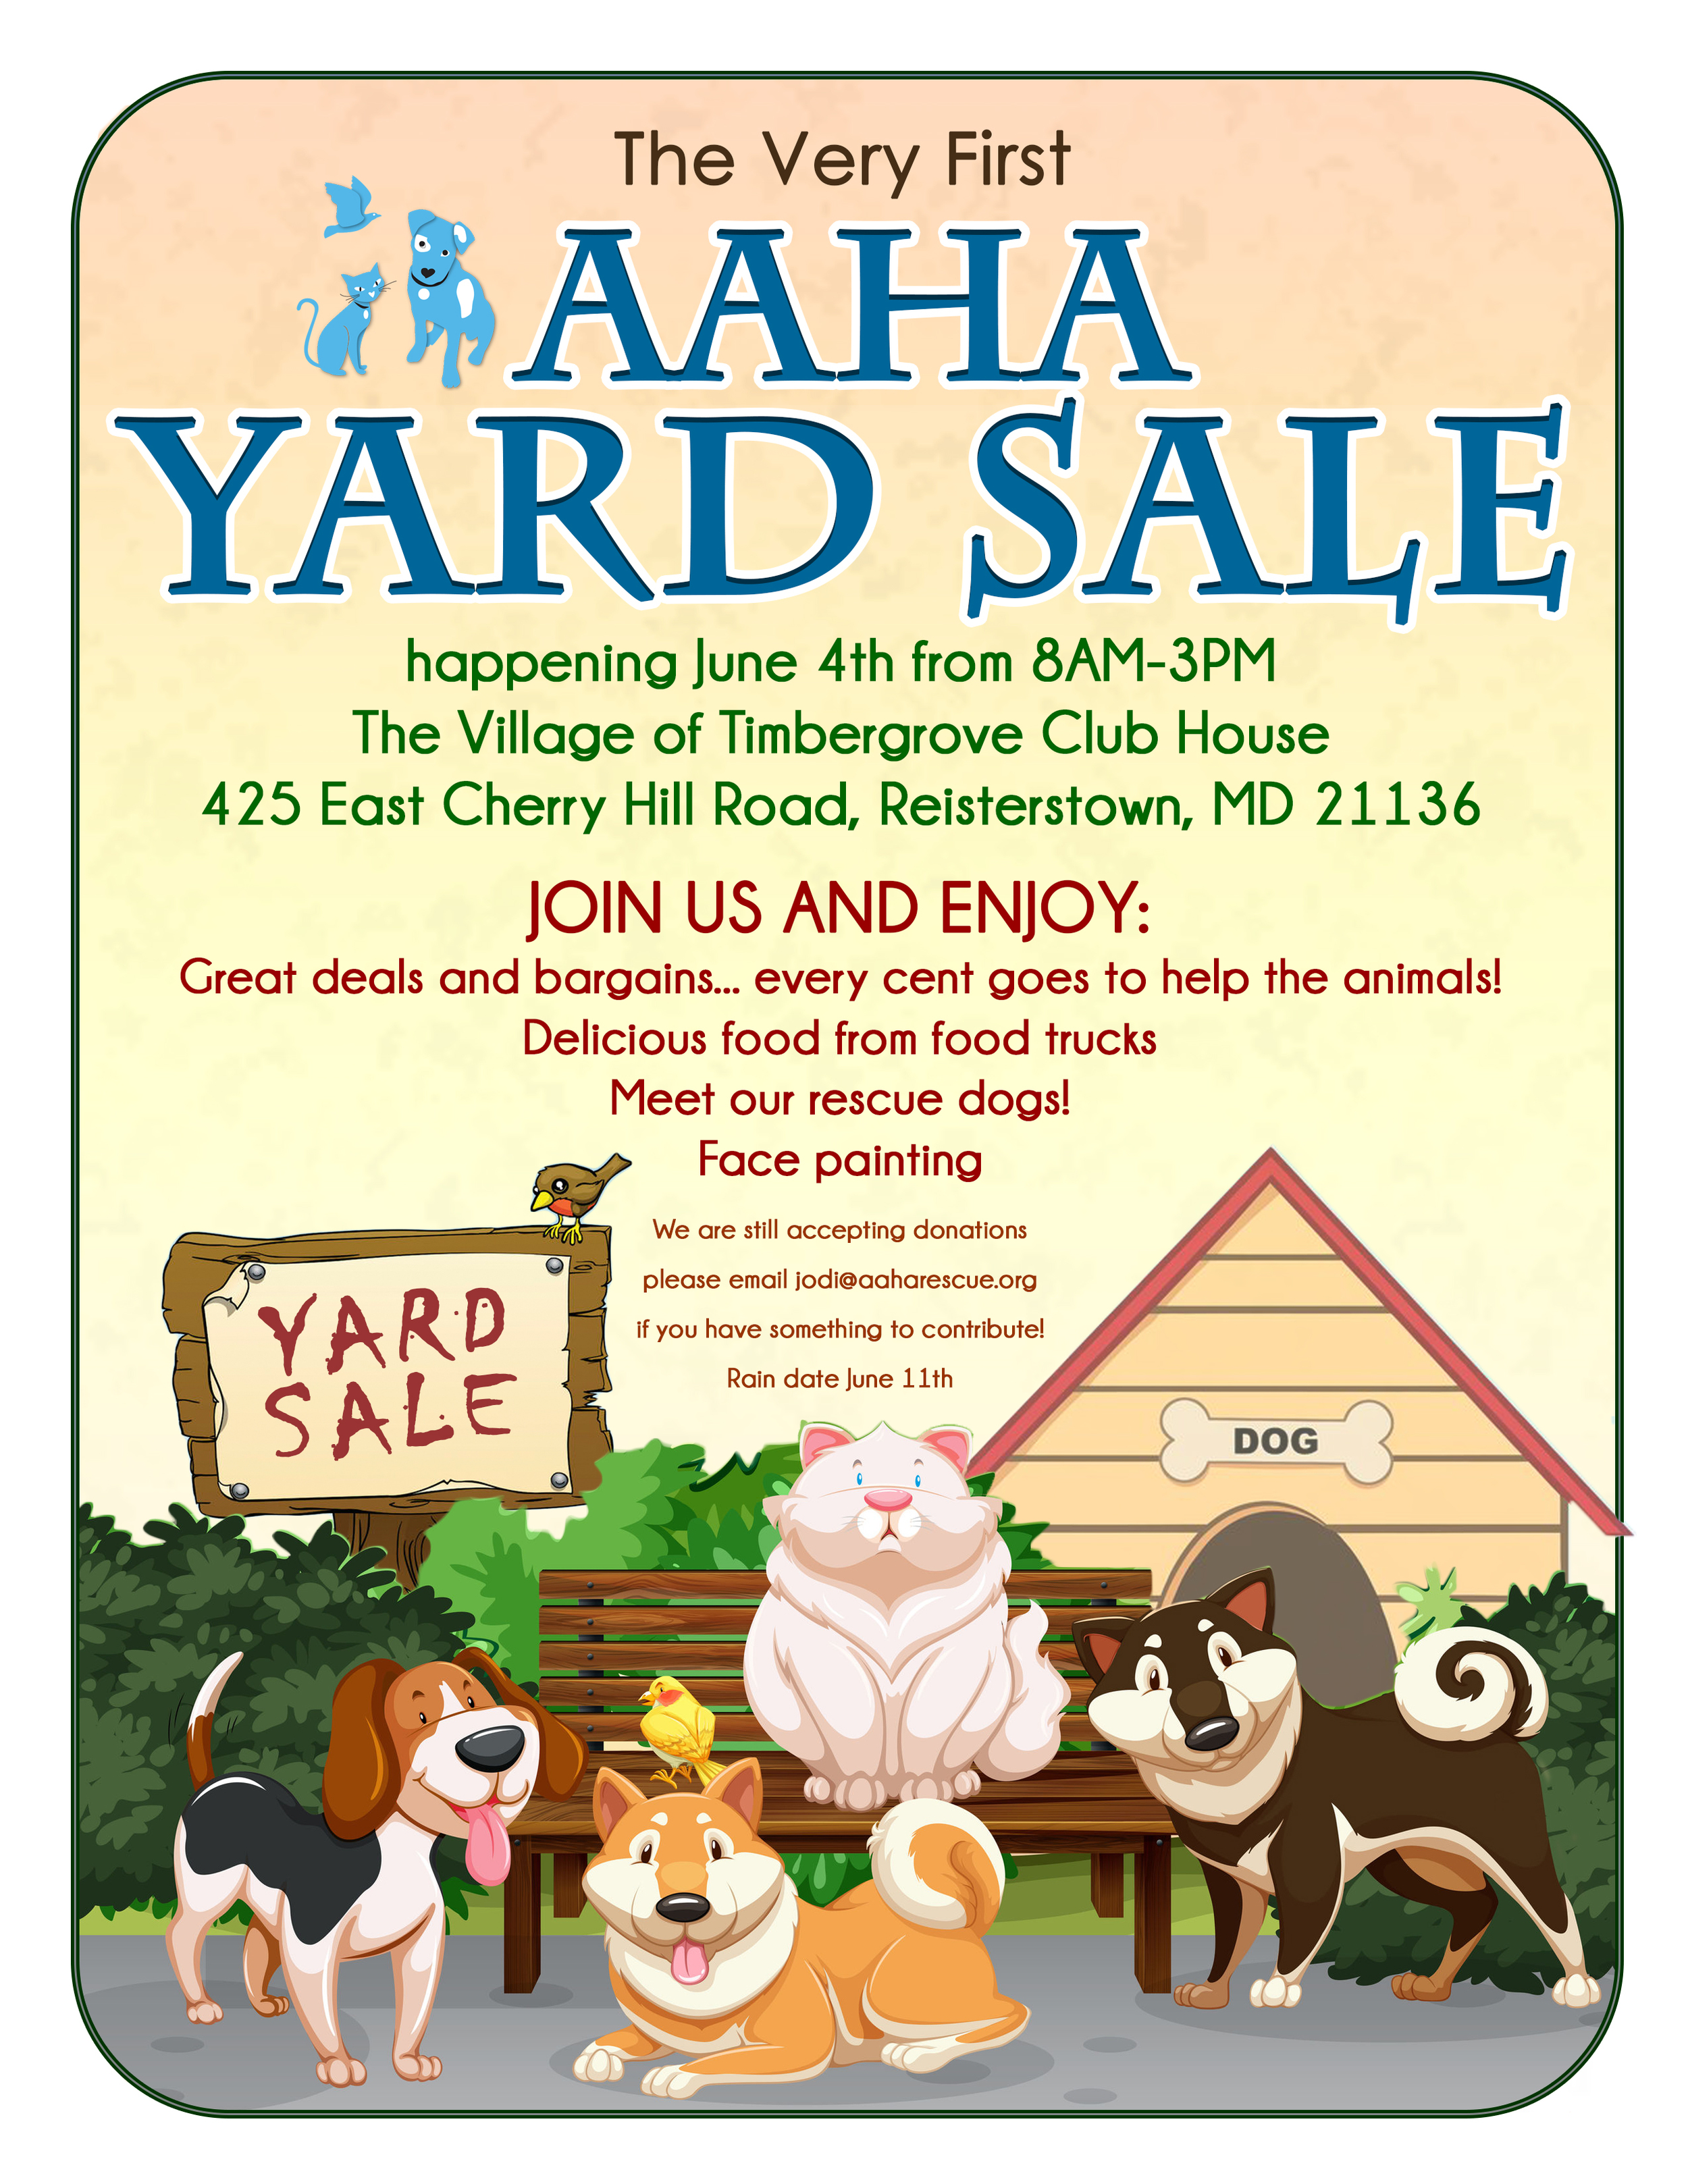 Consider making a donation for the yard sale.